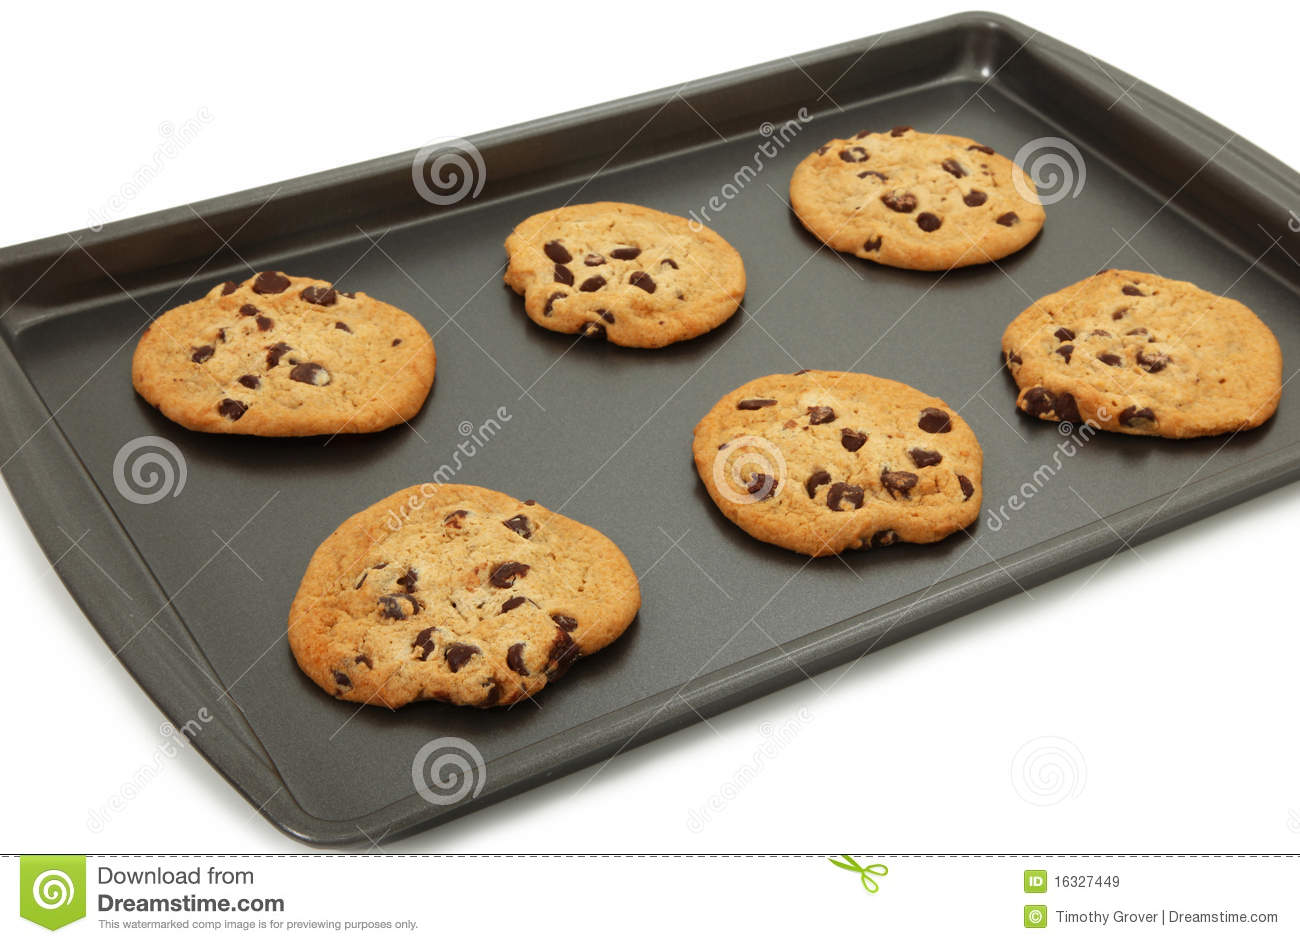 3577 Cookies free clipart.